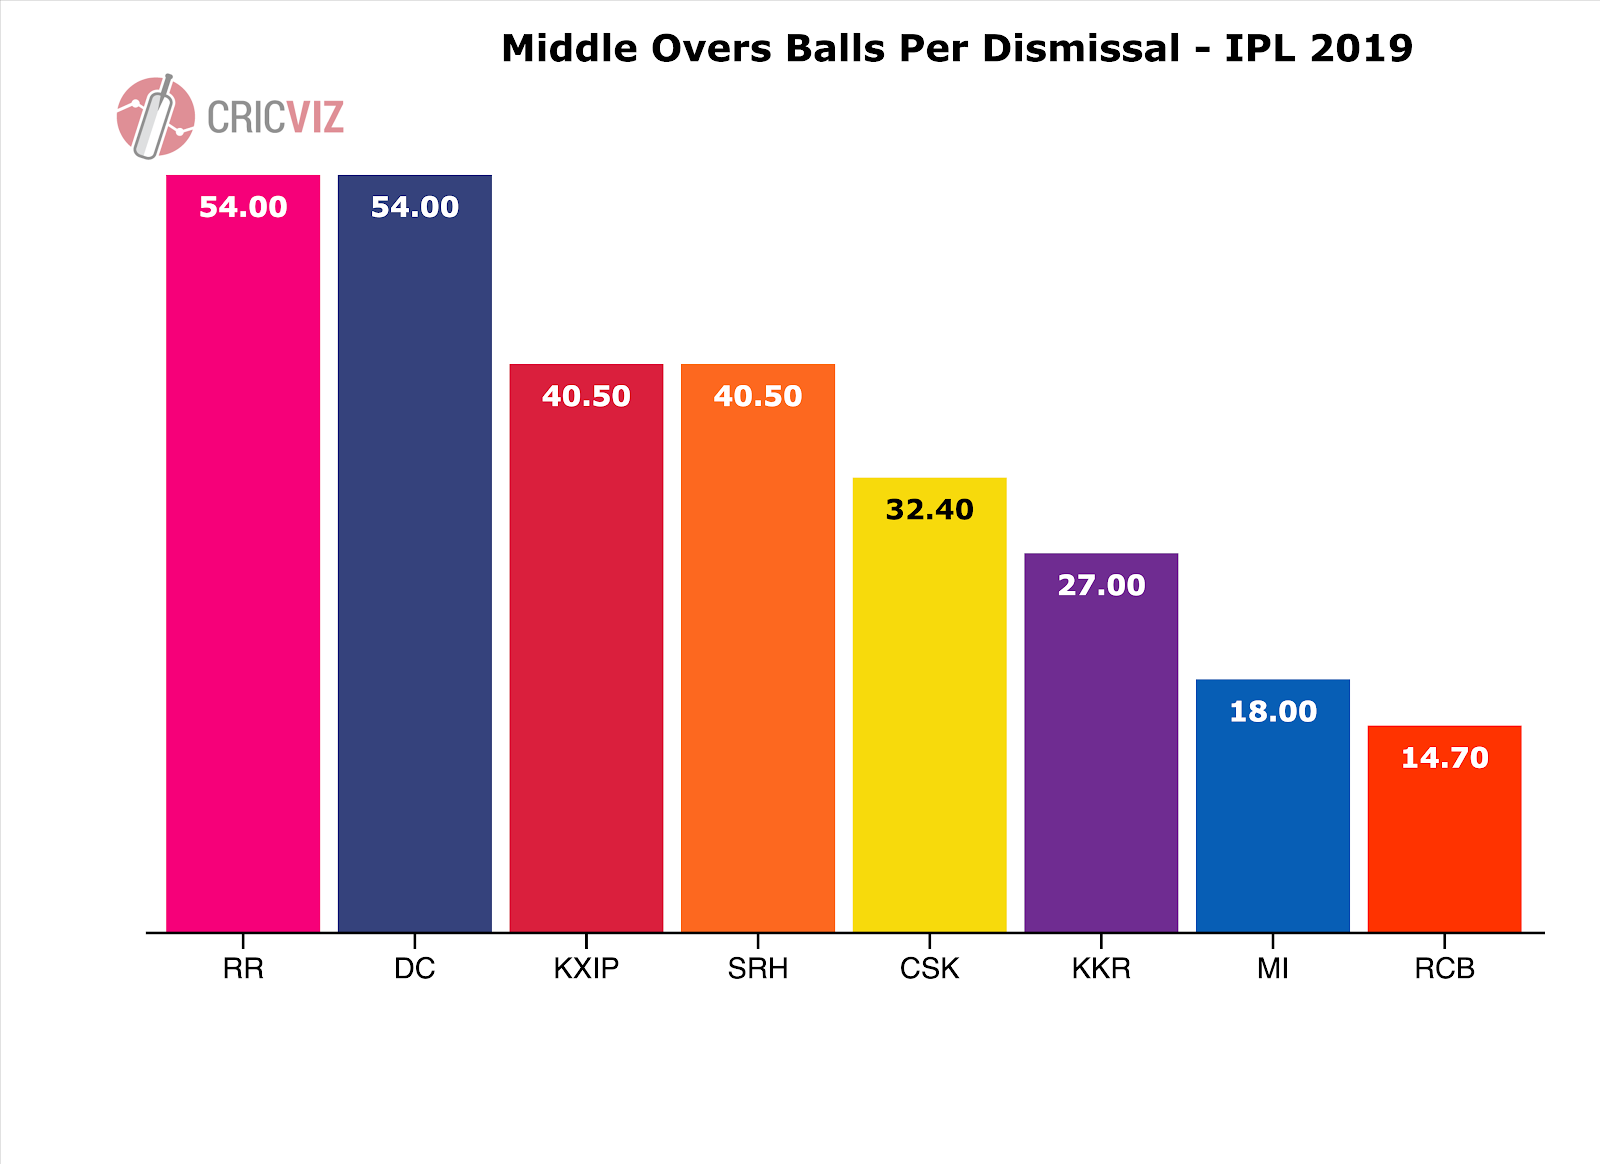 IPL Cricket stats and analysis from CricViz (page 1 of 2)